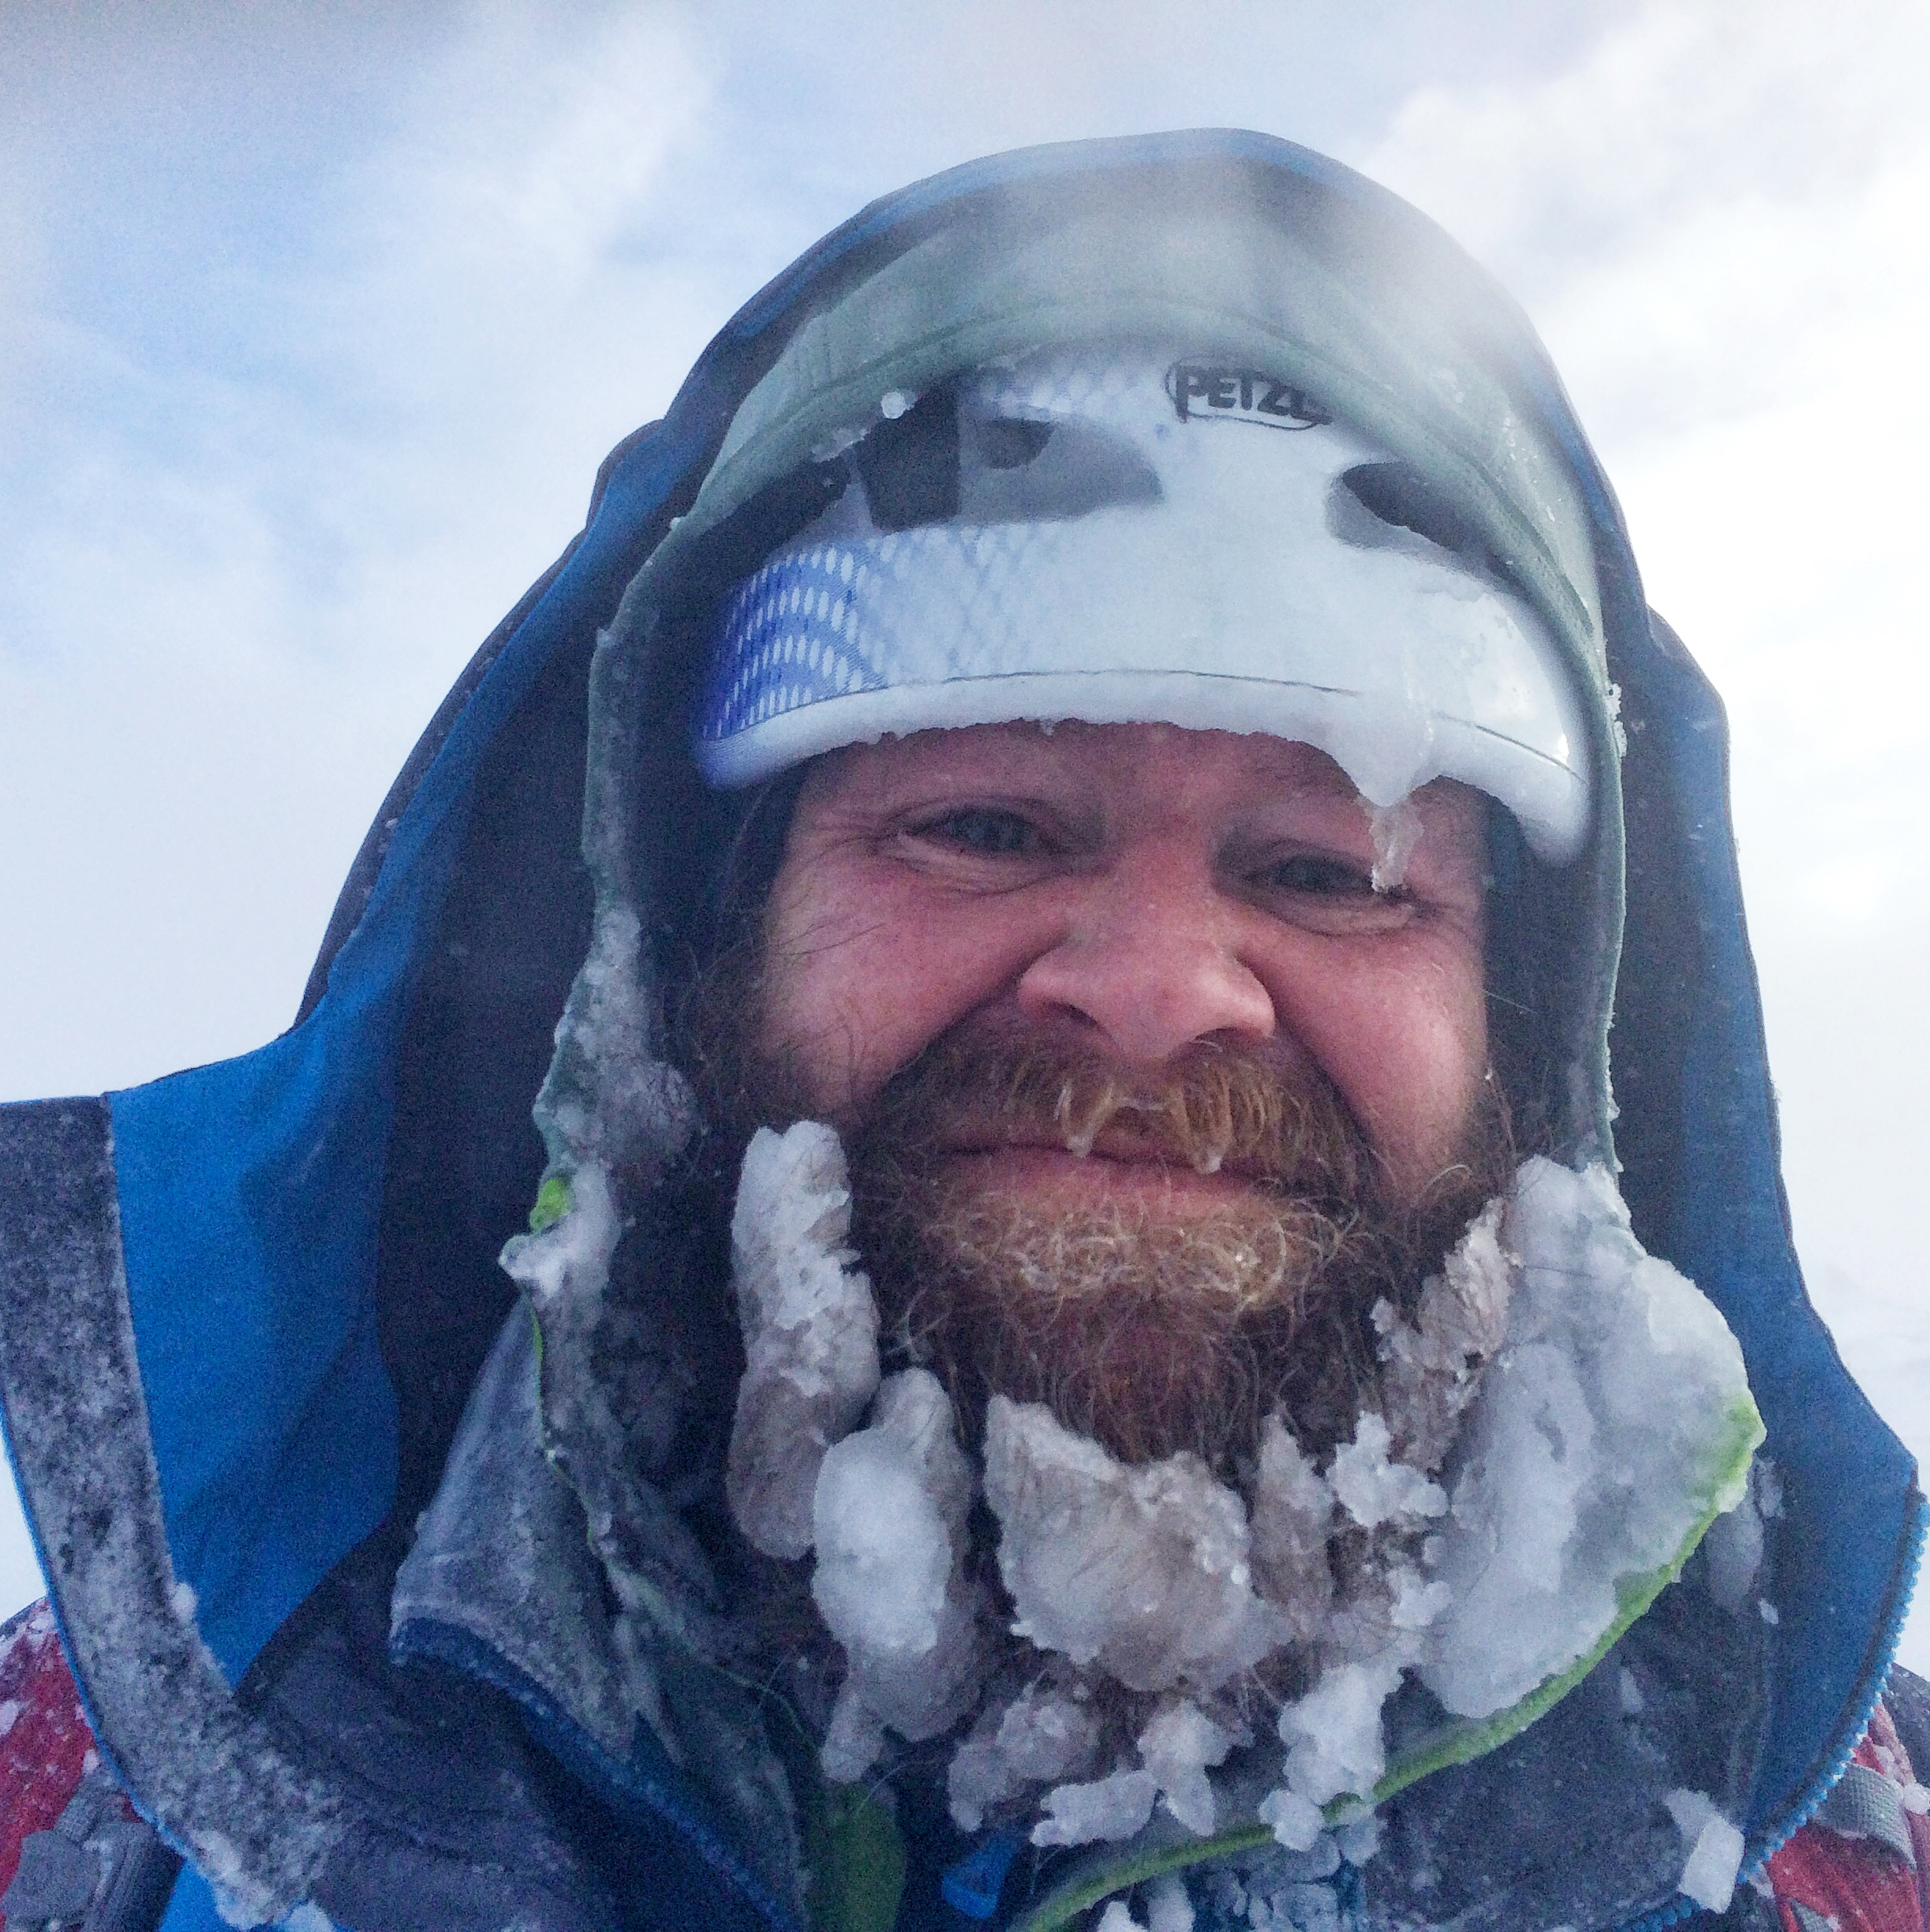 Alan assured us his icy beard provided extra insulation.